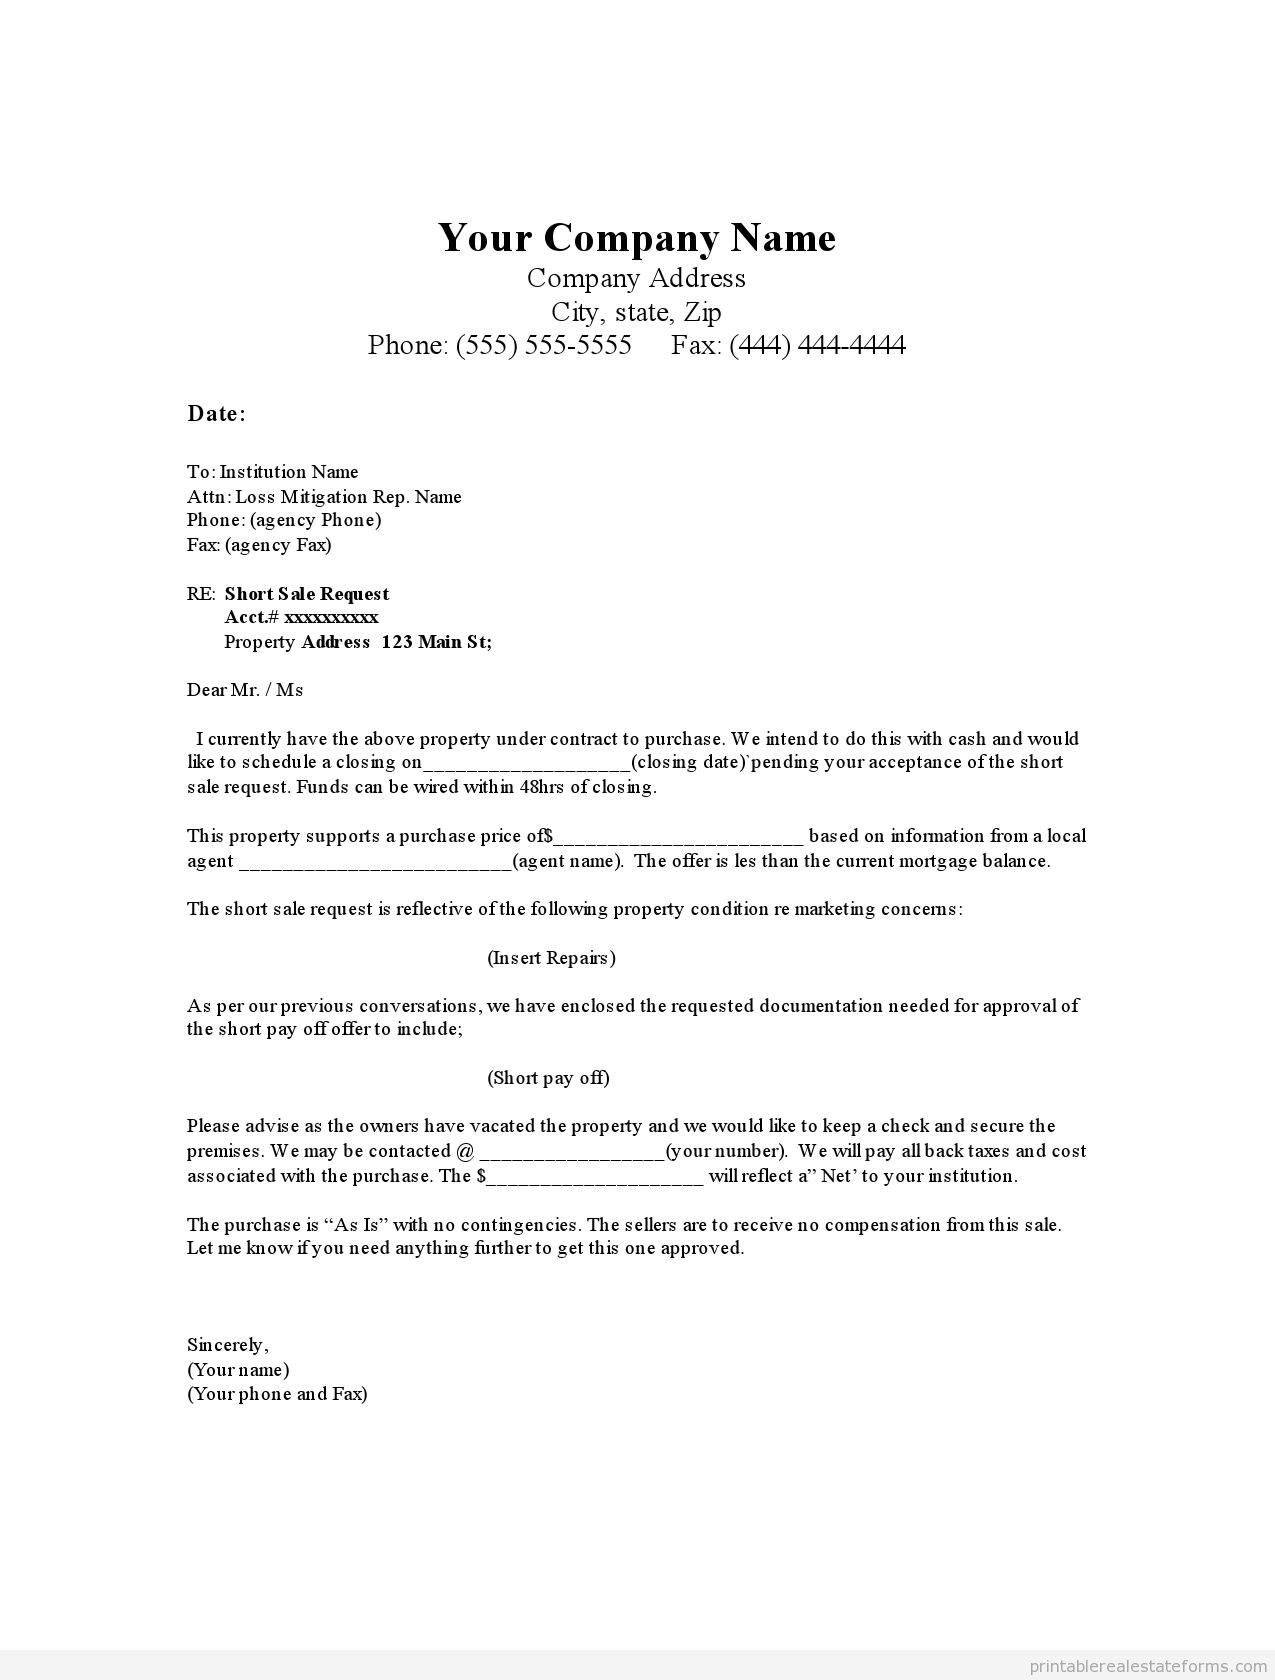 Sample Offer Letter Template - Home Fer Letter Template Home Fer Letter Sample Ideas